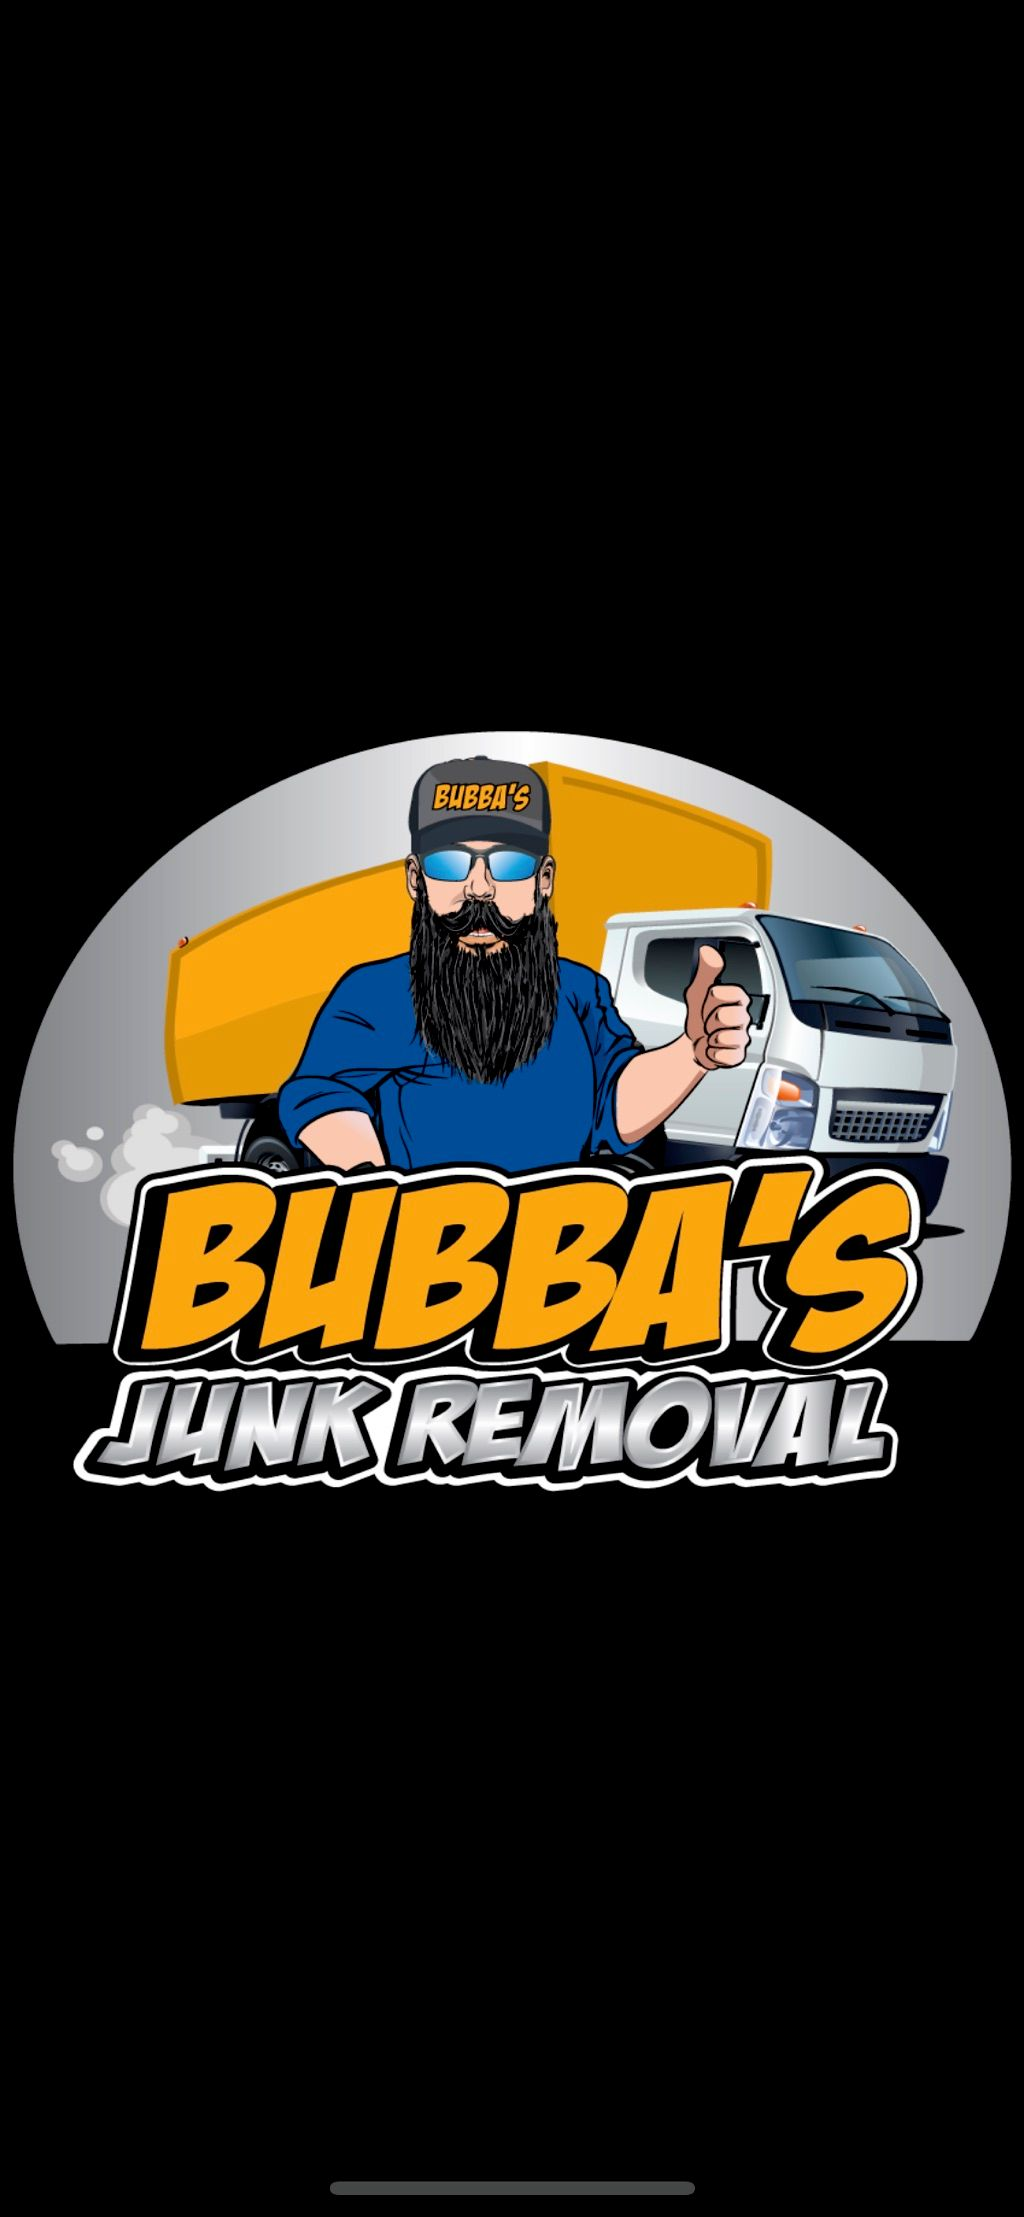 Bubba's Junk Removal LLC